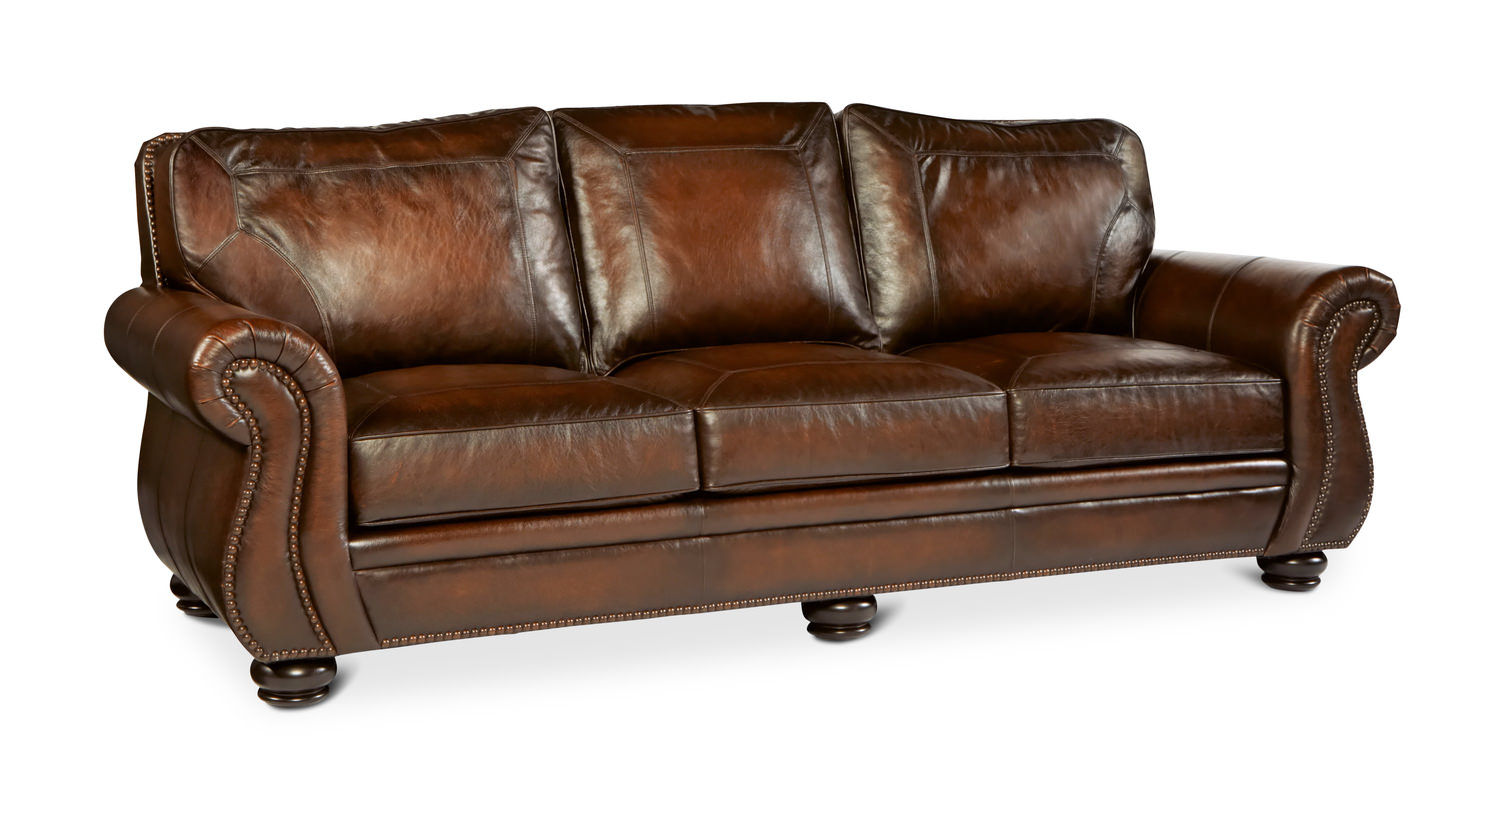 Breckenridge Leather Sofa by Bernhardt Images - Frompo